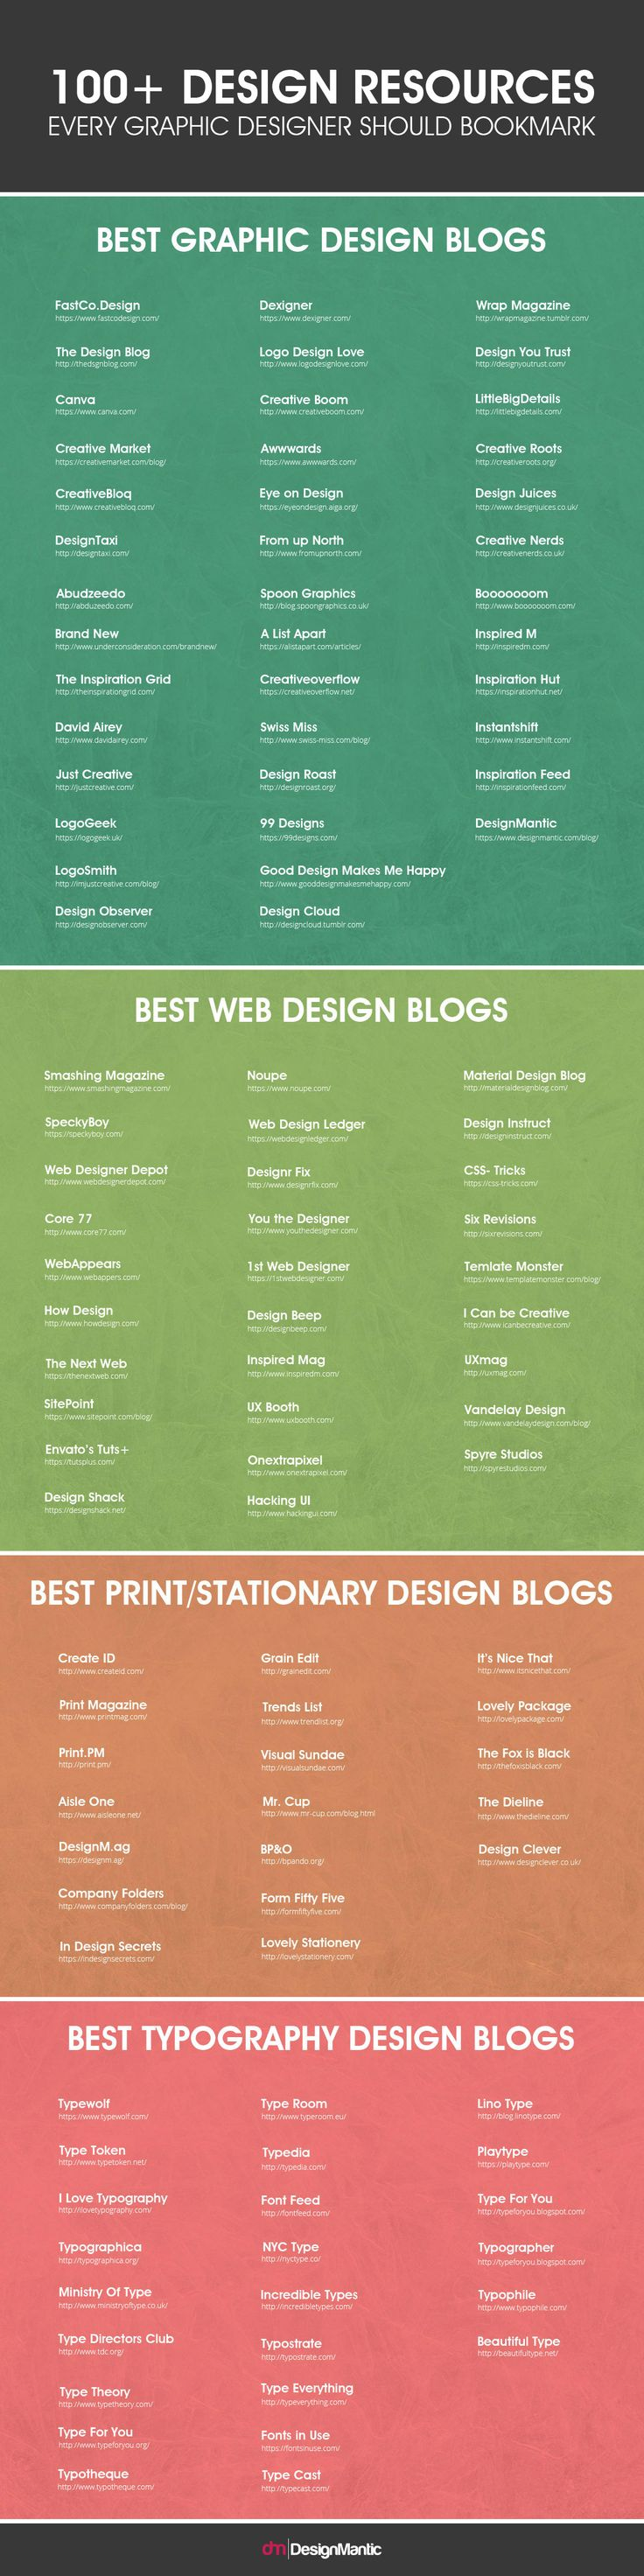 Poster design resources - 100 Design Resources Every Graphic Designer Should Bookmark Visual Ly